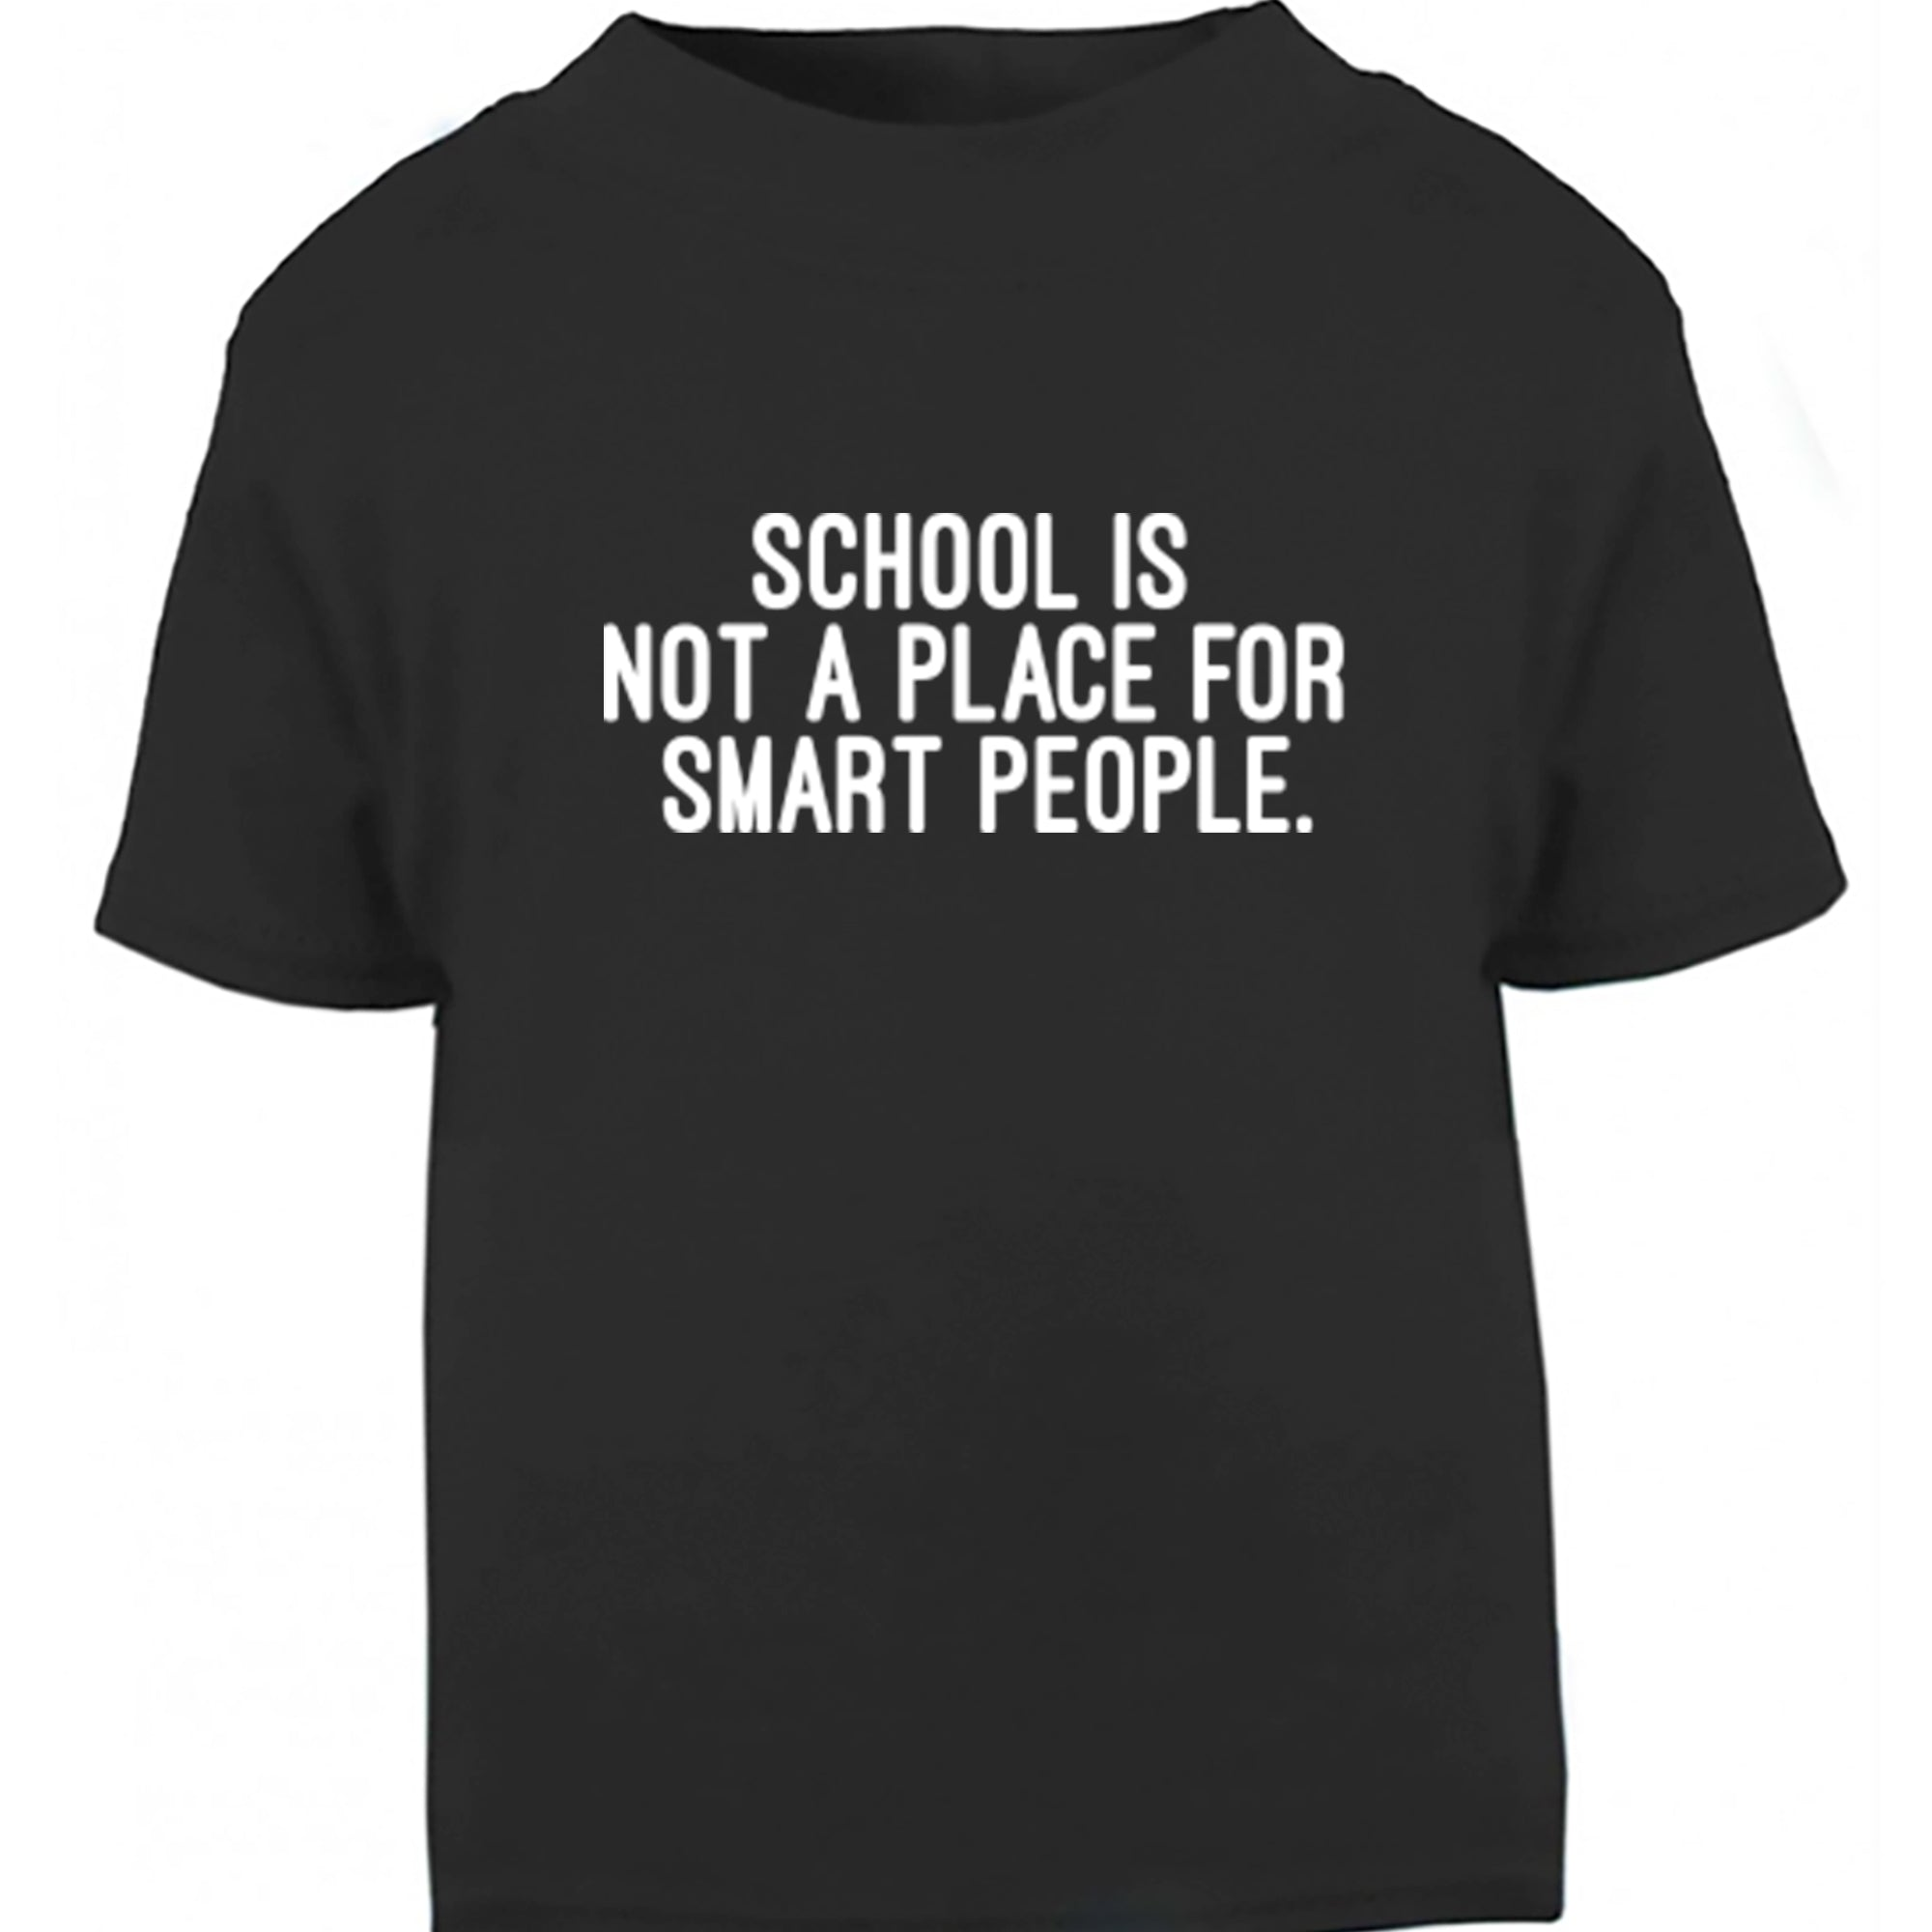 School Is Not A Place For Smart People Childrens Ages 3/4-12/14 Unisex Fit T-Shirt S0404 - Illustrated Identity Ltd.